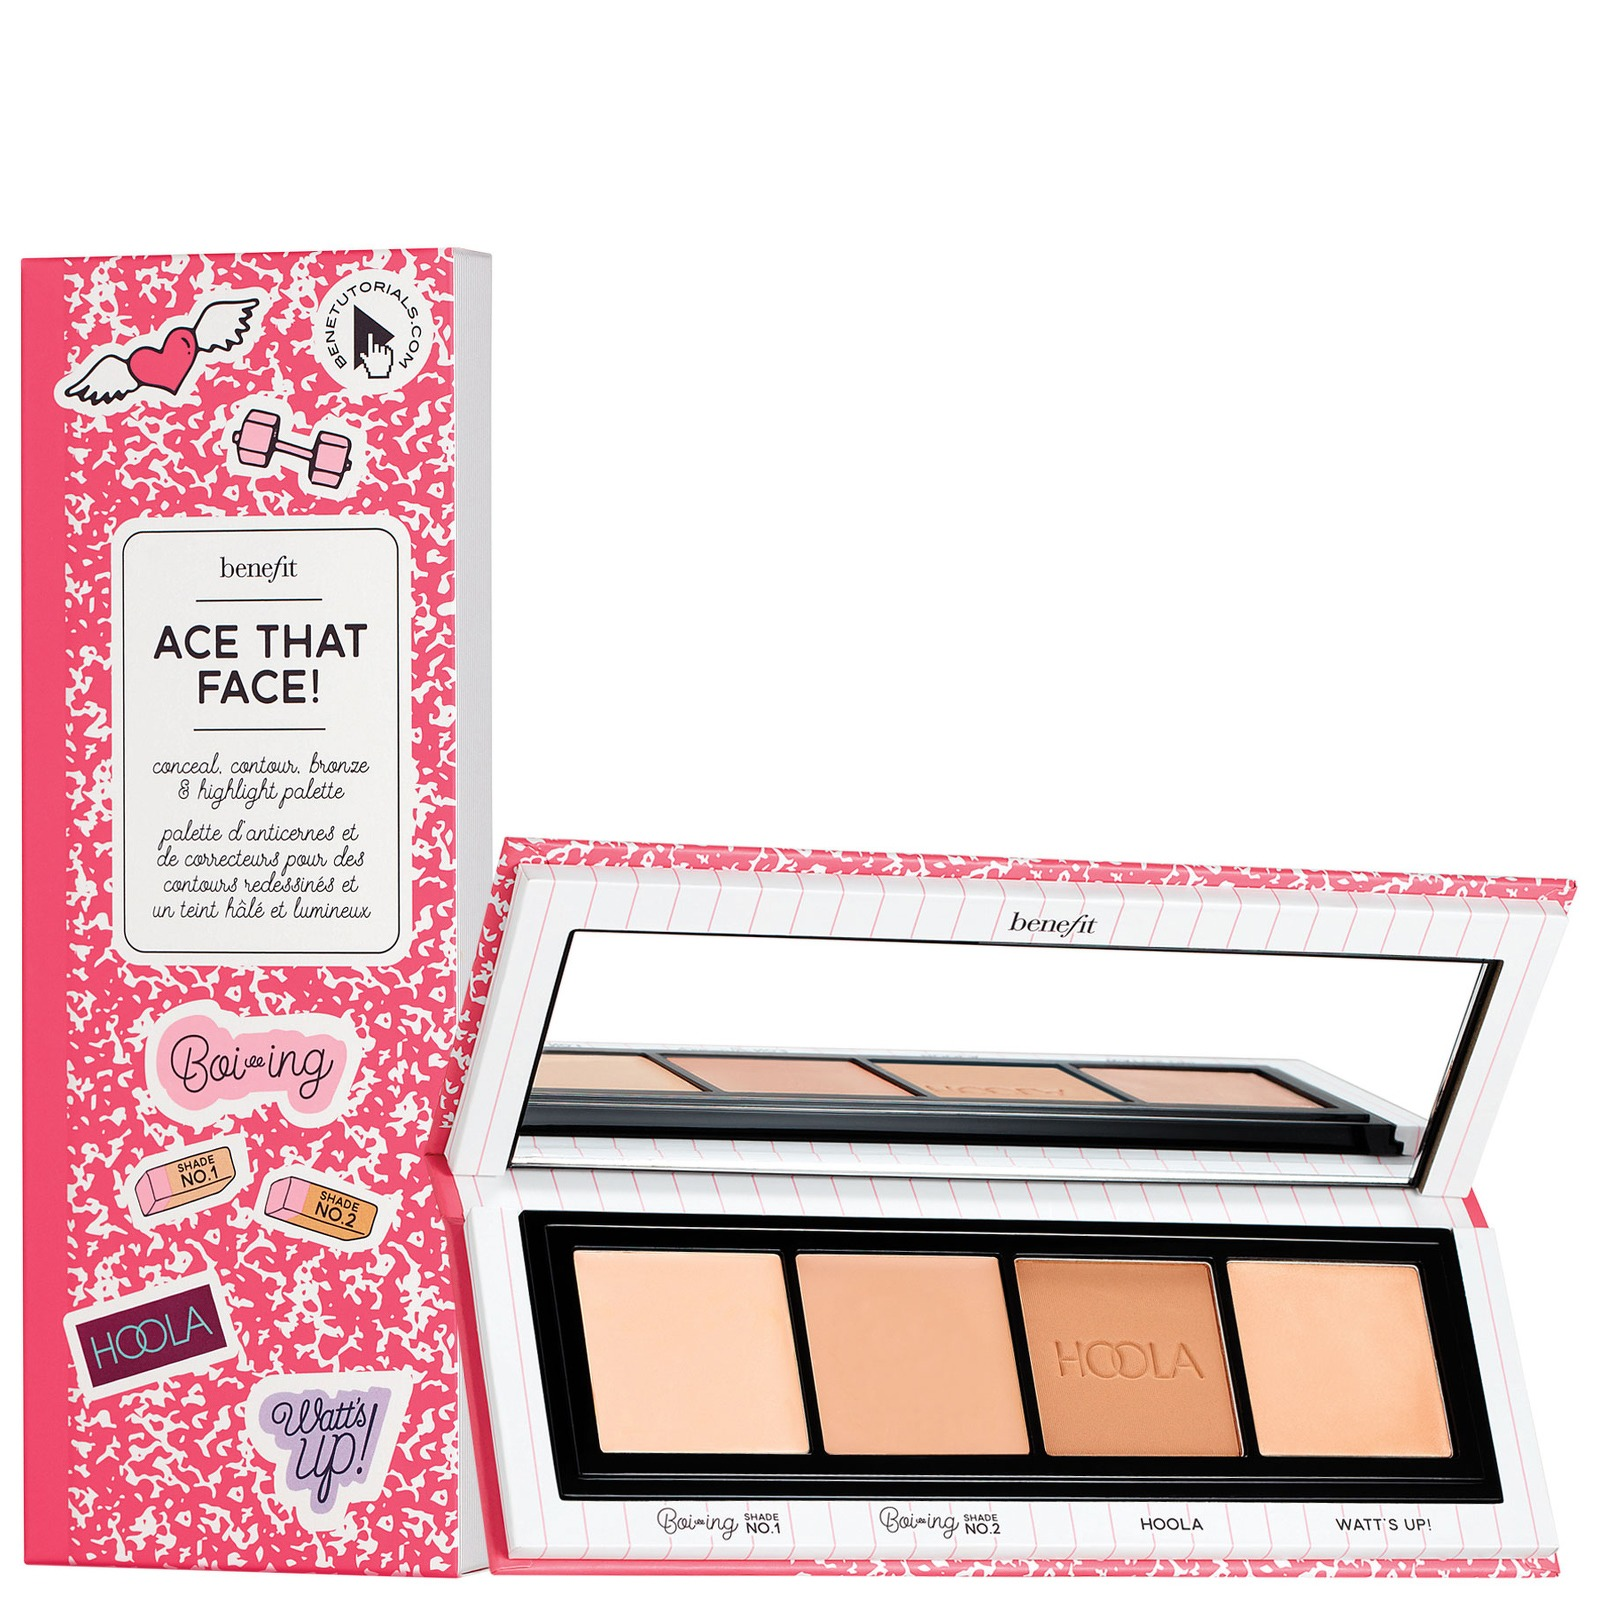 benefit Makeup Kits Ace That Face!